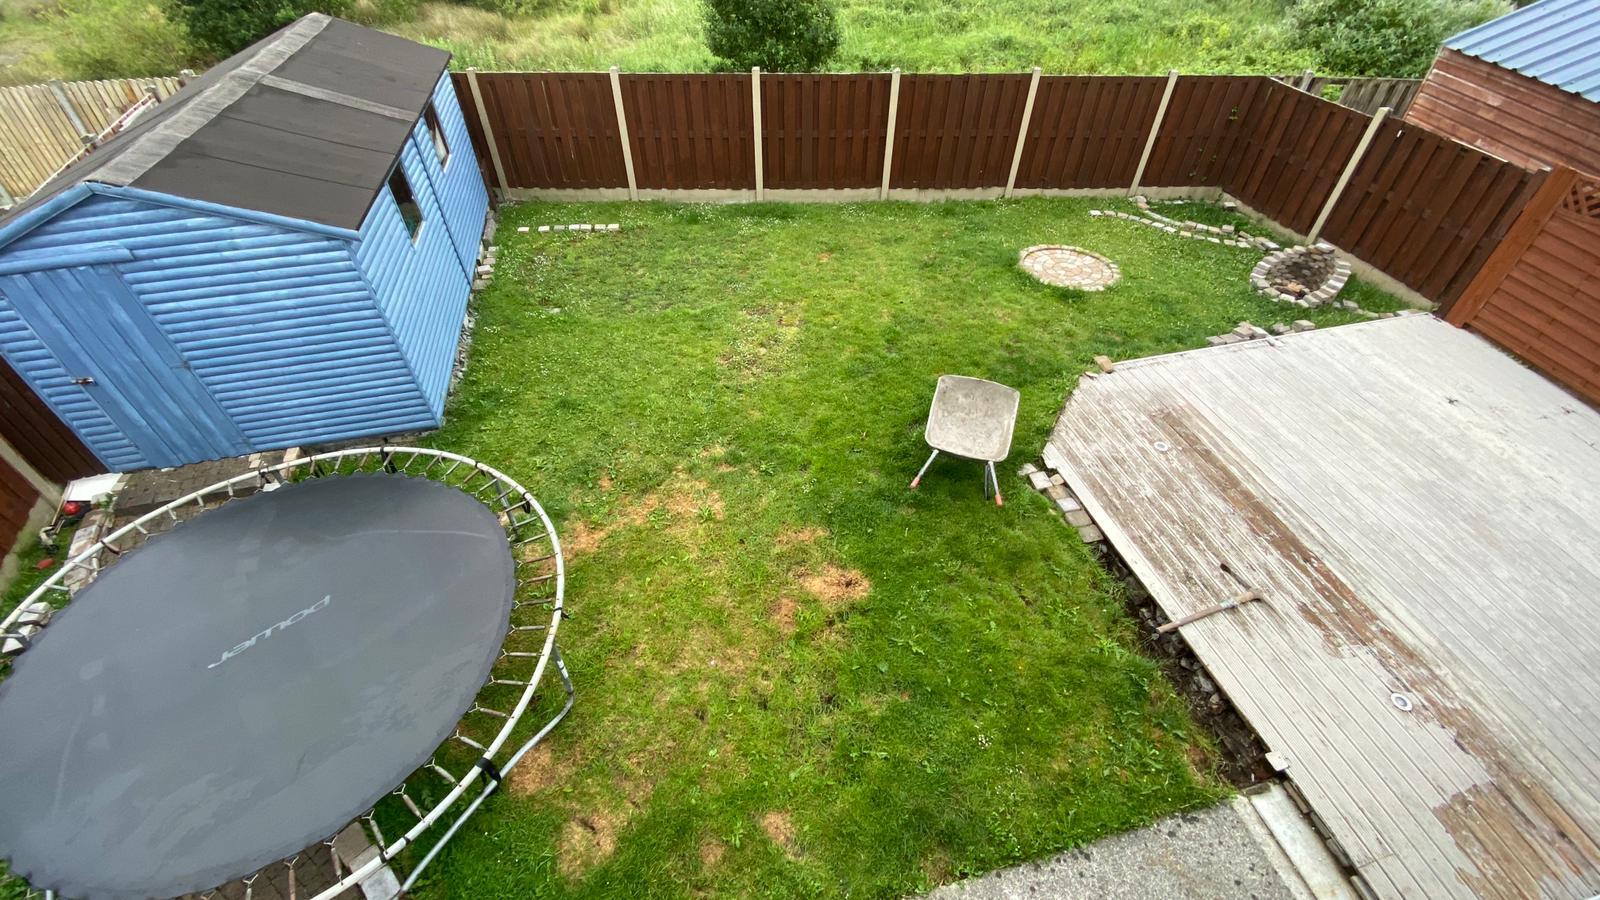 Garden transformation in Oranmore. Before